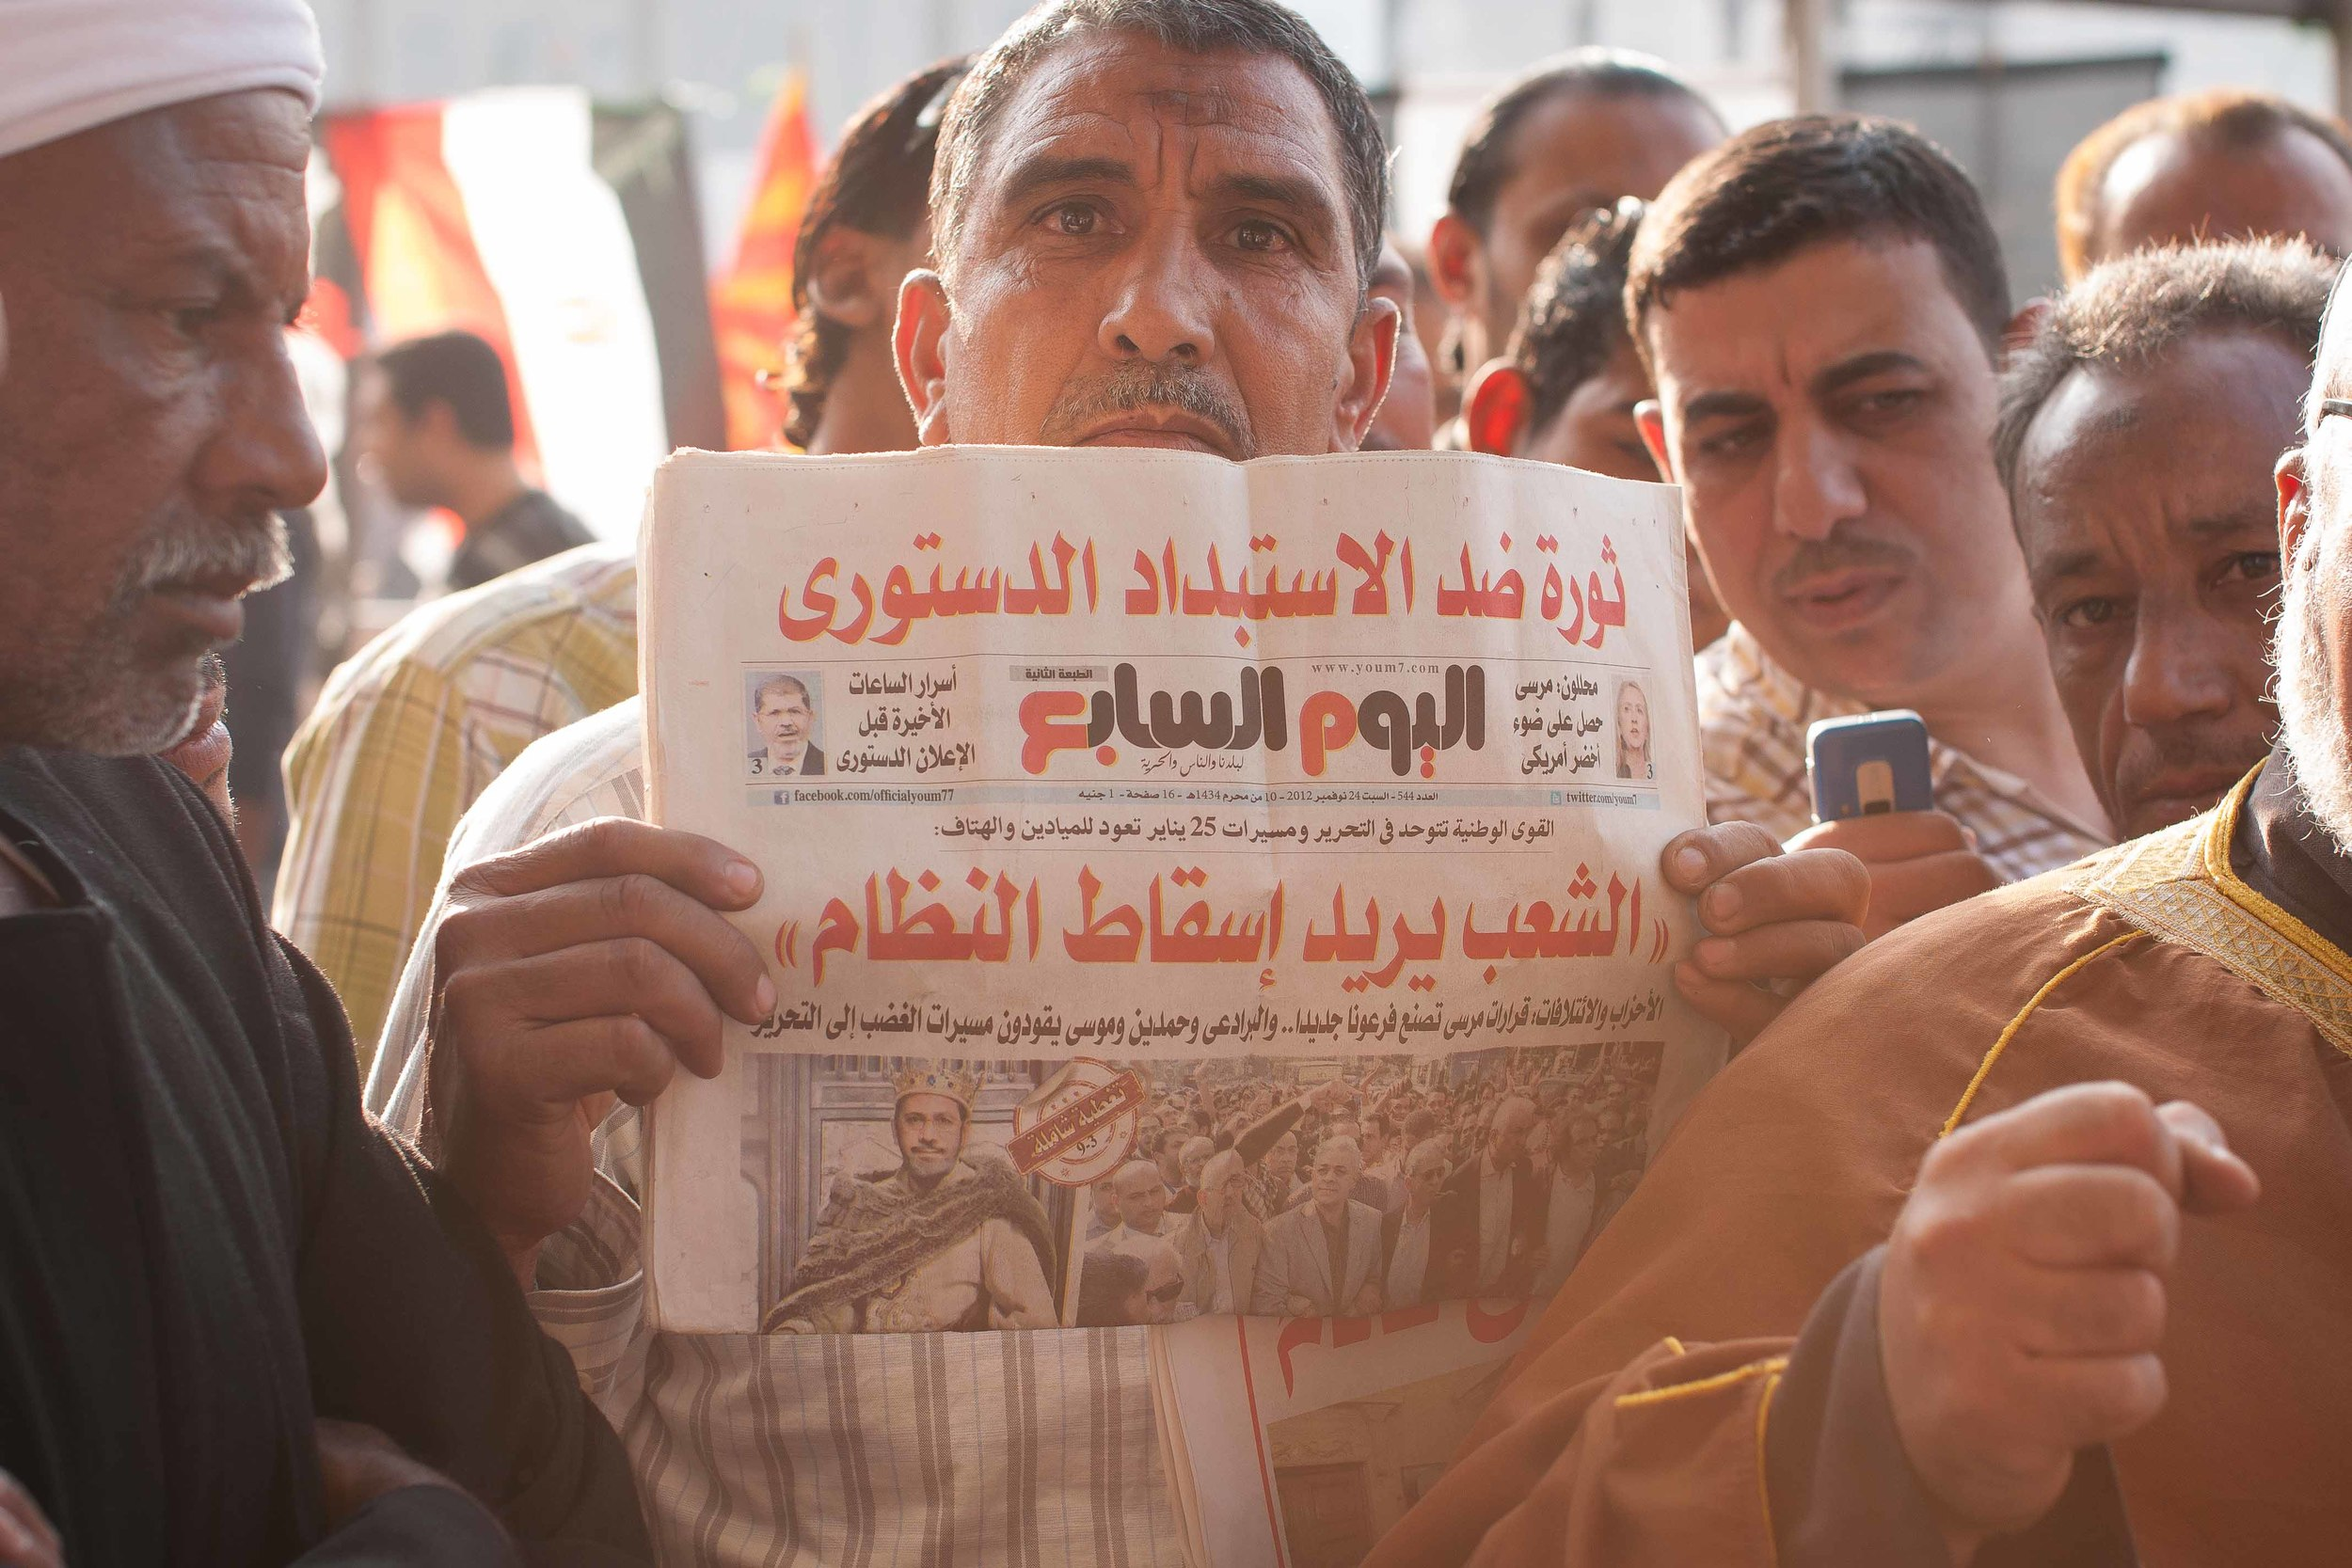 Other than the light, the one thing I love about this picture is the small photo of Morsi wearing a crown. Enough said.